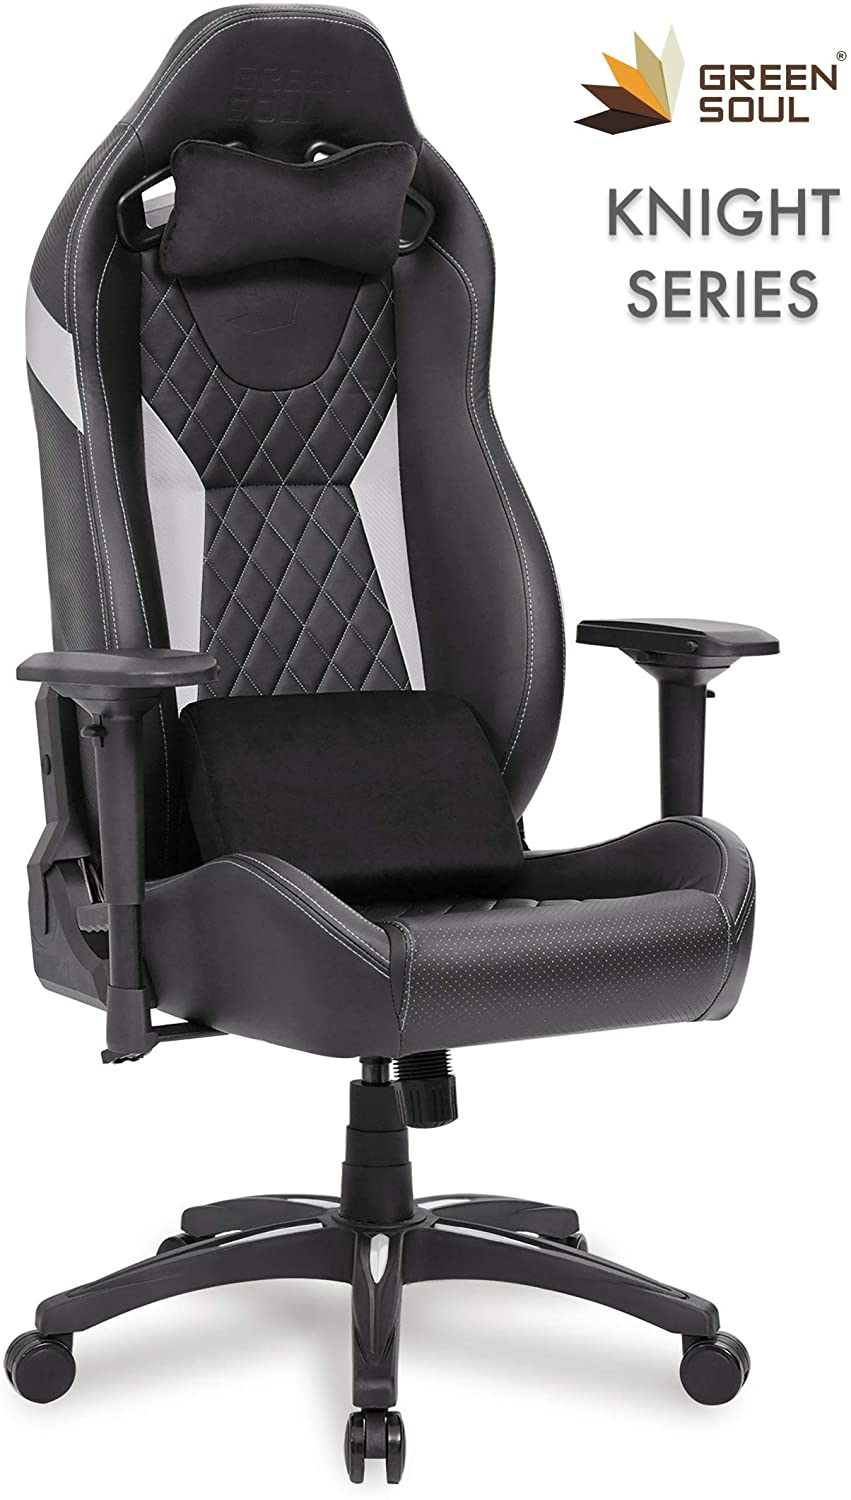 Green Soul Knight Series PU Leather, 4D Armrests, Class 4